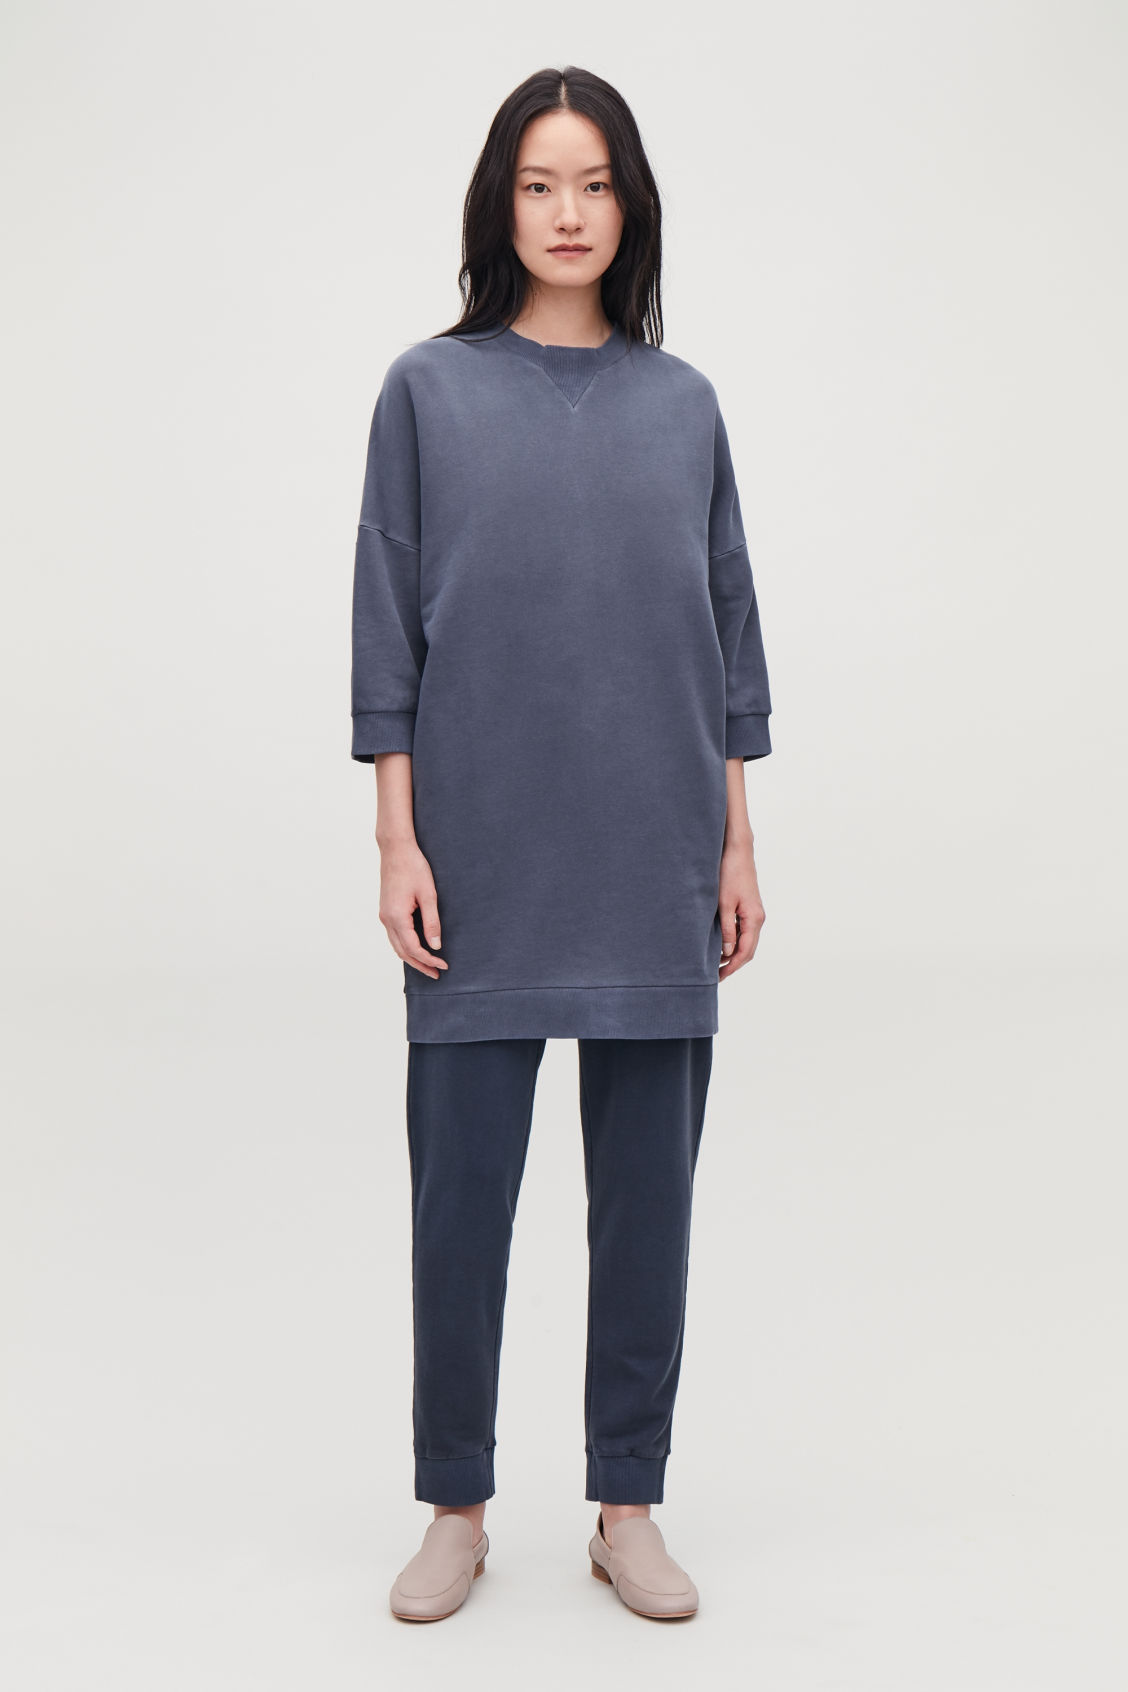 Model front image of Cos ¾-sleeved sweatshirt dress in blue